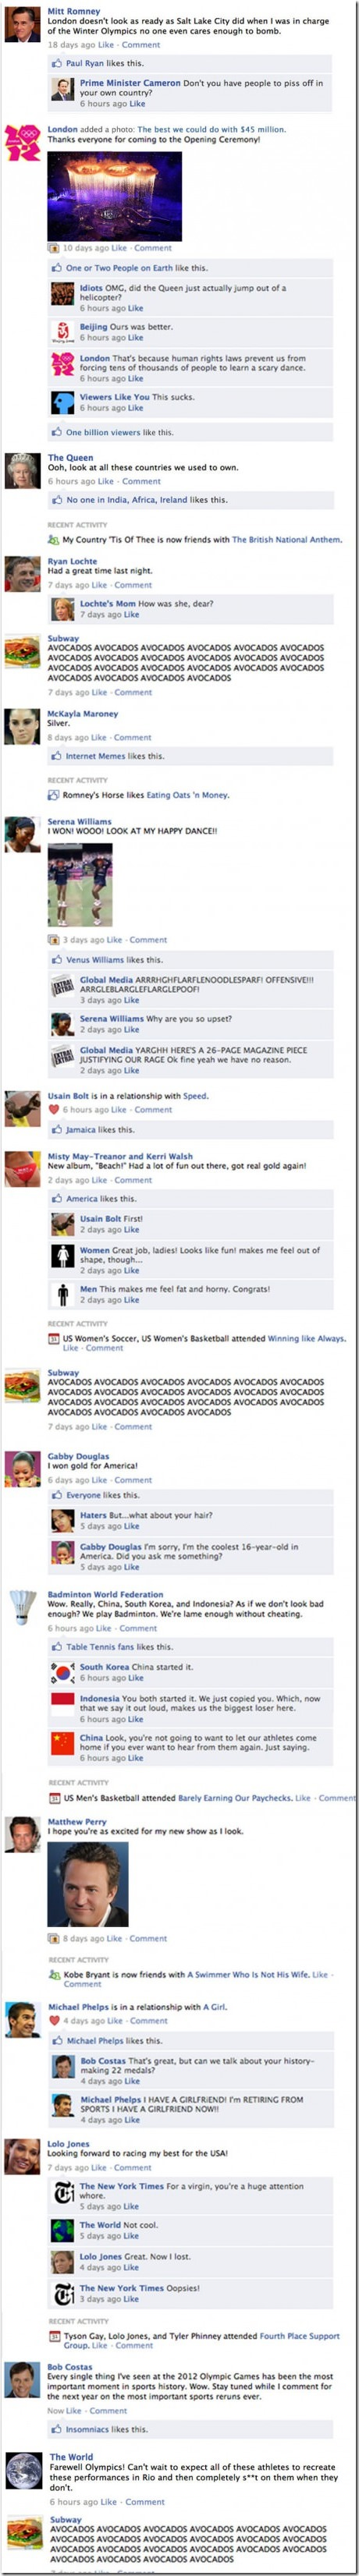 If the Olympics had been on the Facebook newsfeed